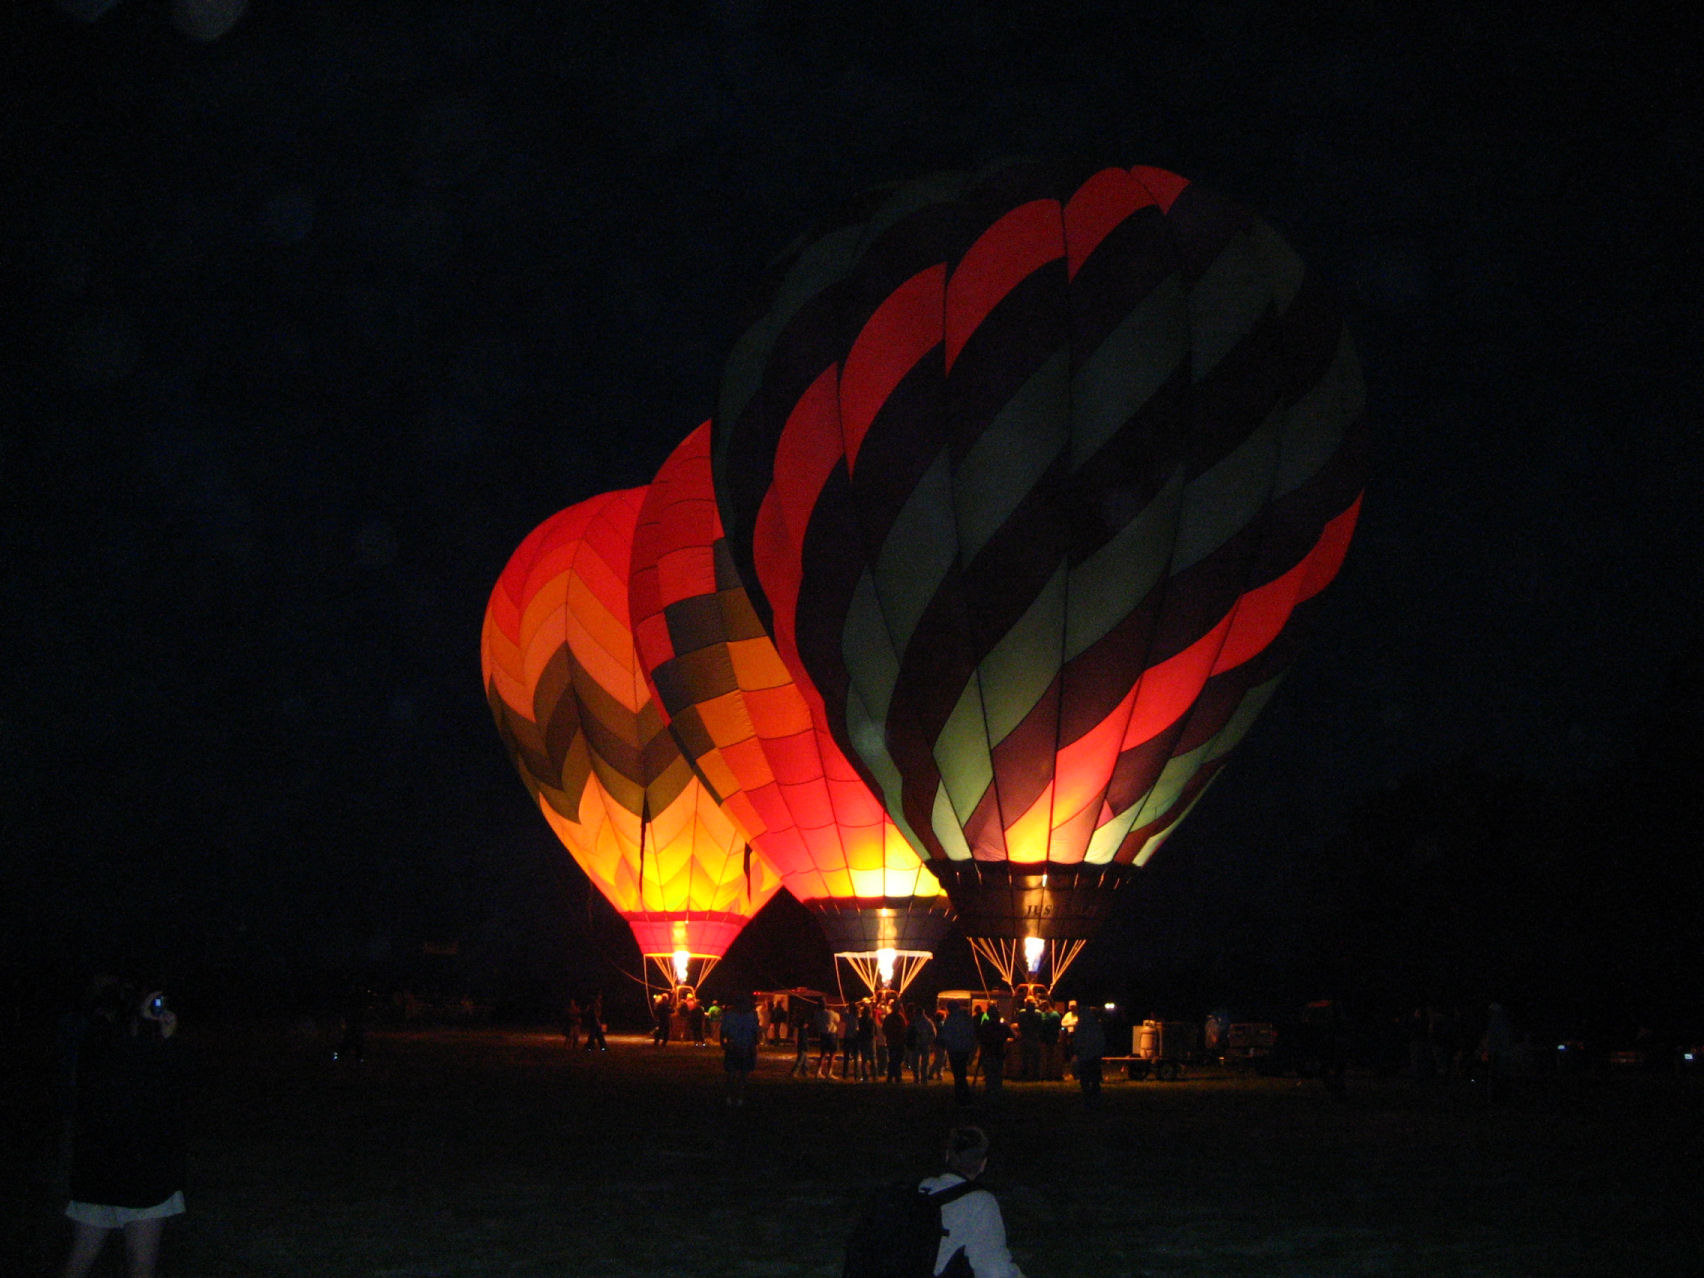 The Dawn Patrol prepares to take flight at the Windsor Hot Air Balloon Classic in Windsor, California.